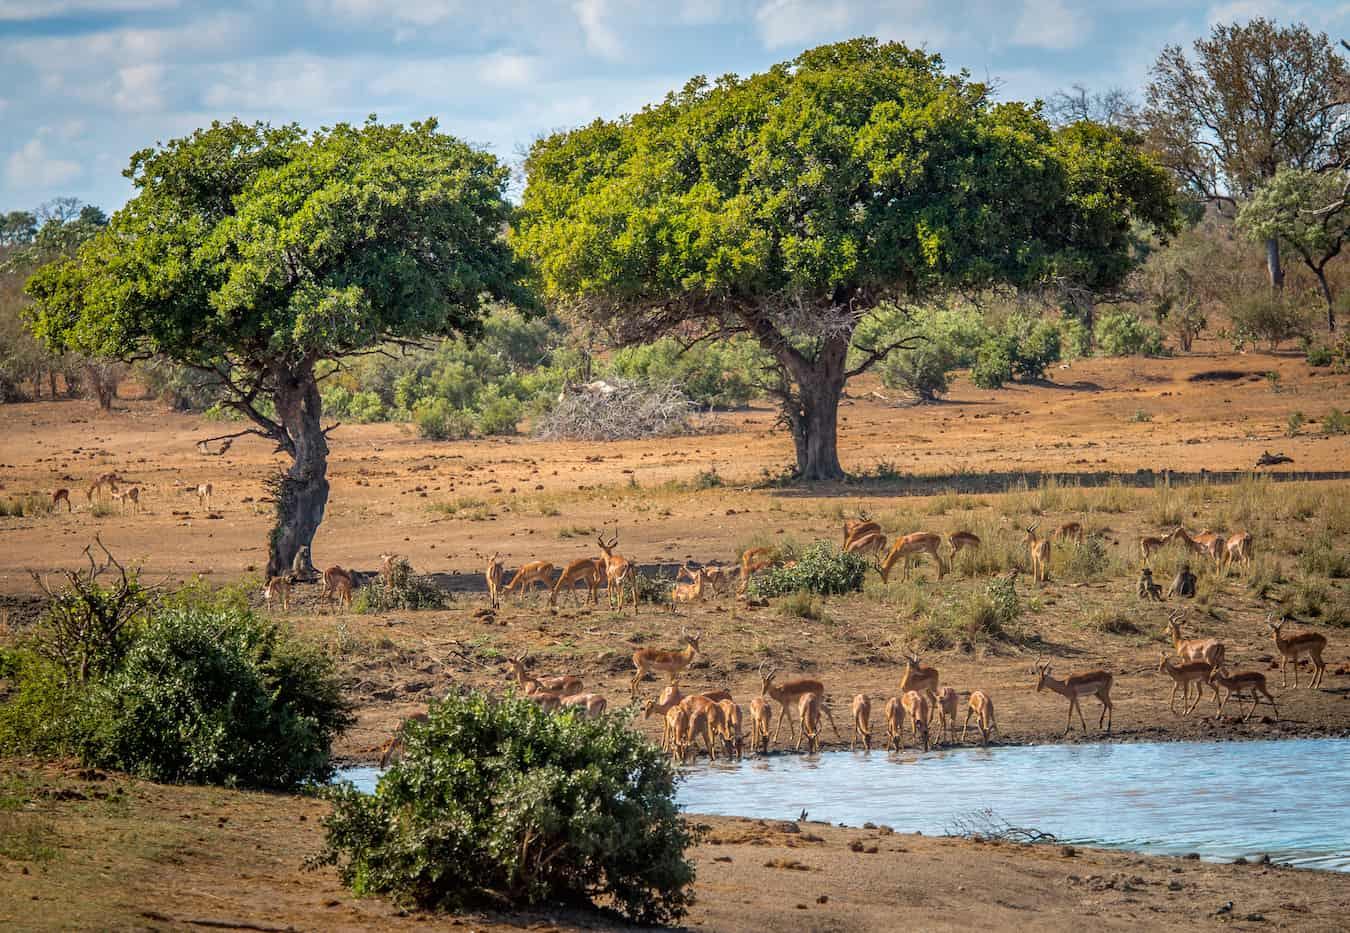 Impalas in Kruger National Park